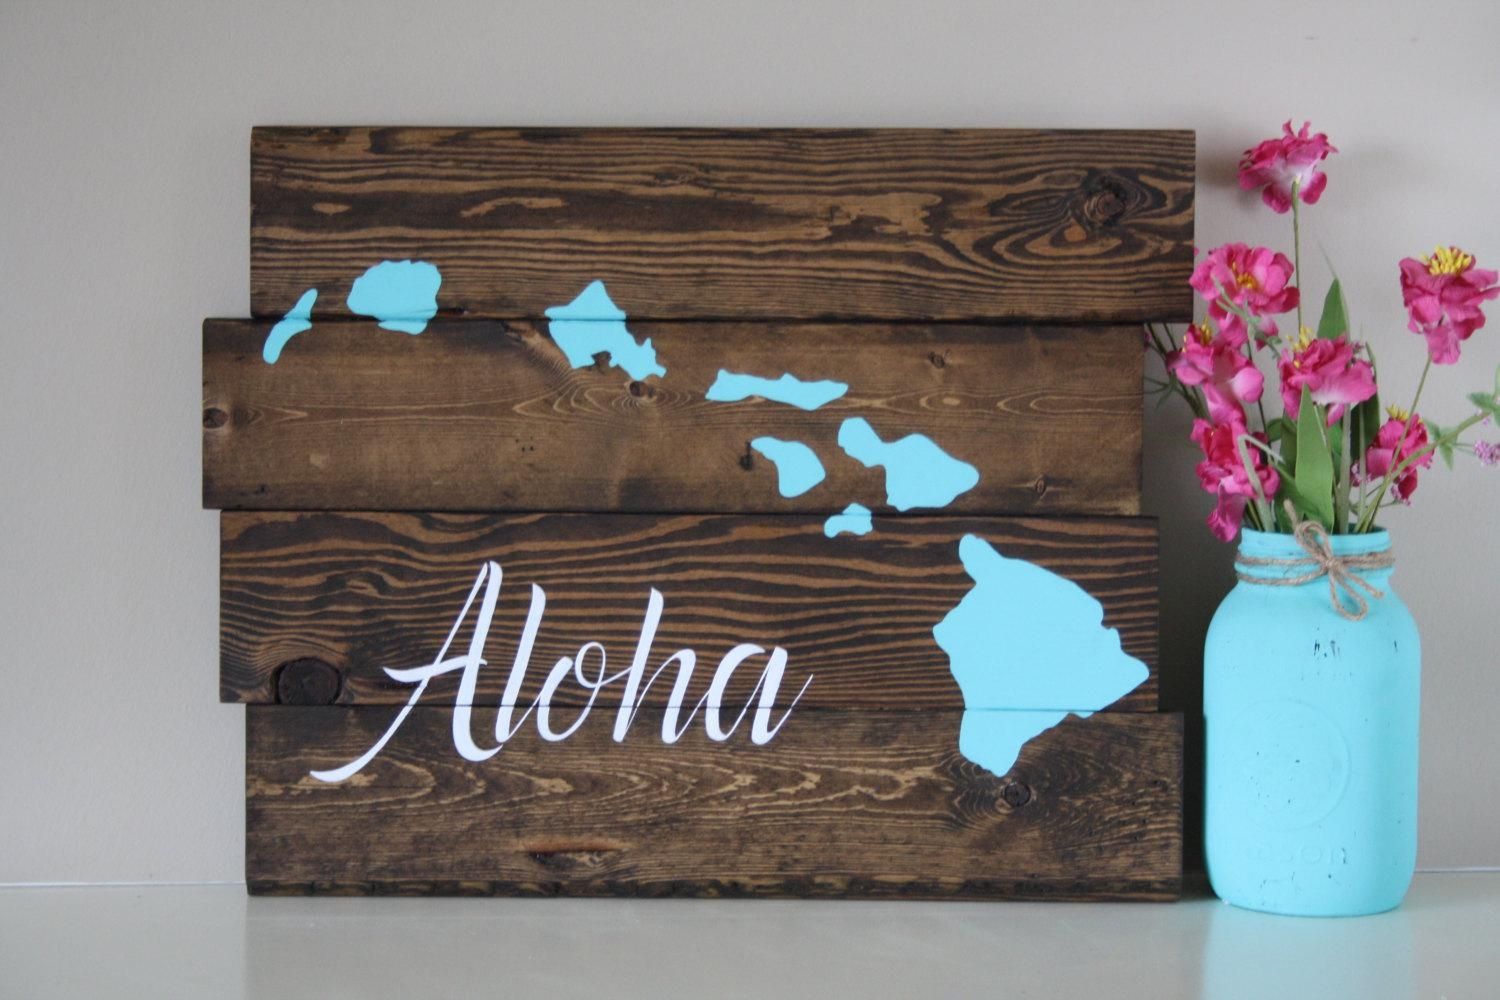 Reclaimed Wood Wall Art Aloha Hawaiian Island Reclaimed In Hawaiian Wall Art (Image 13 of 20)